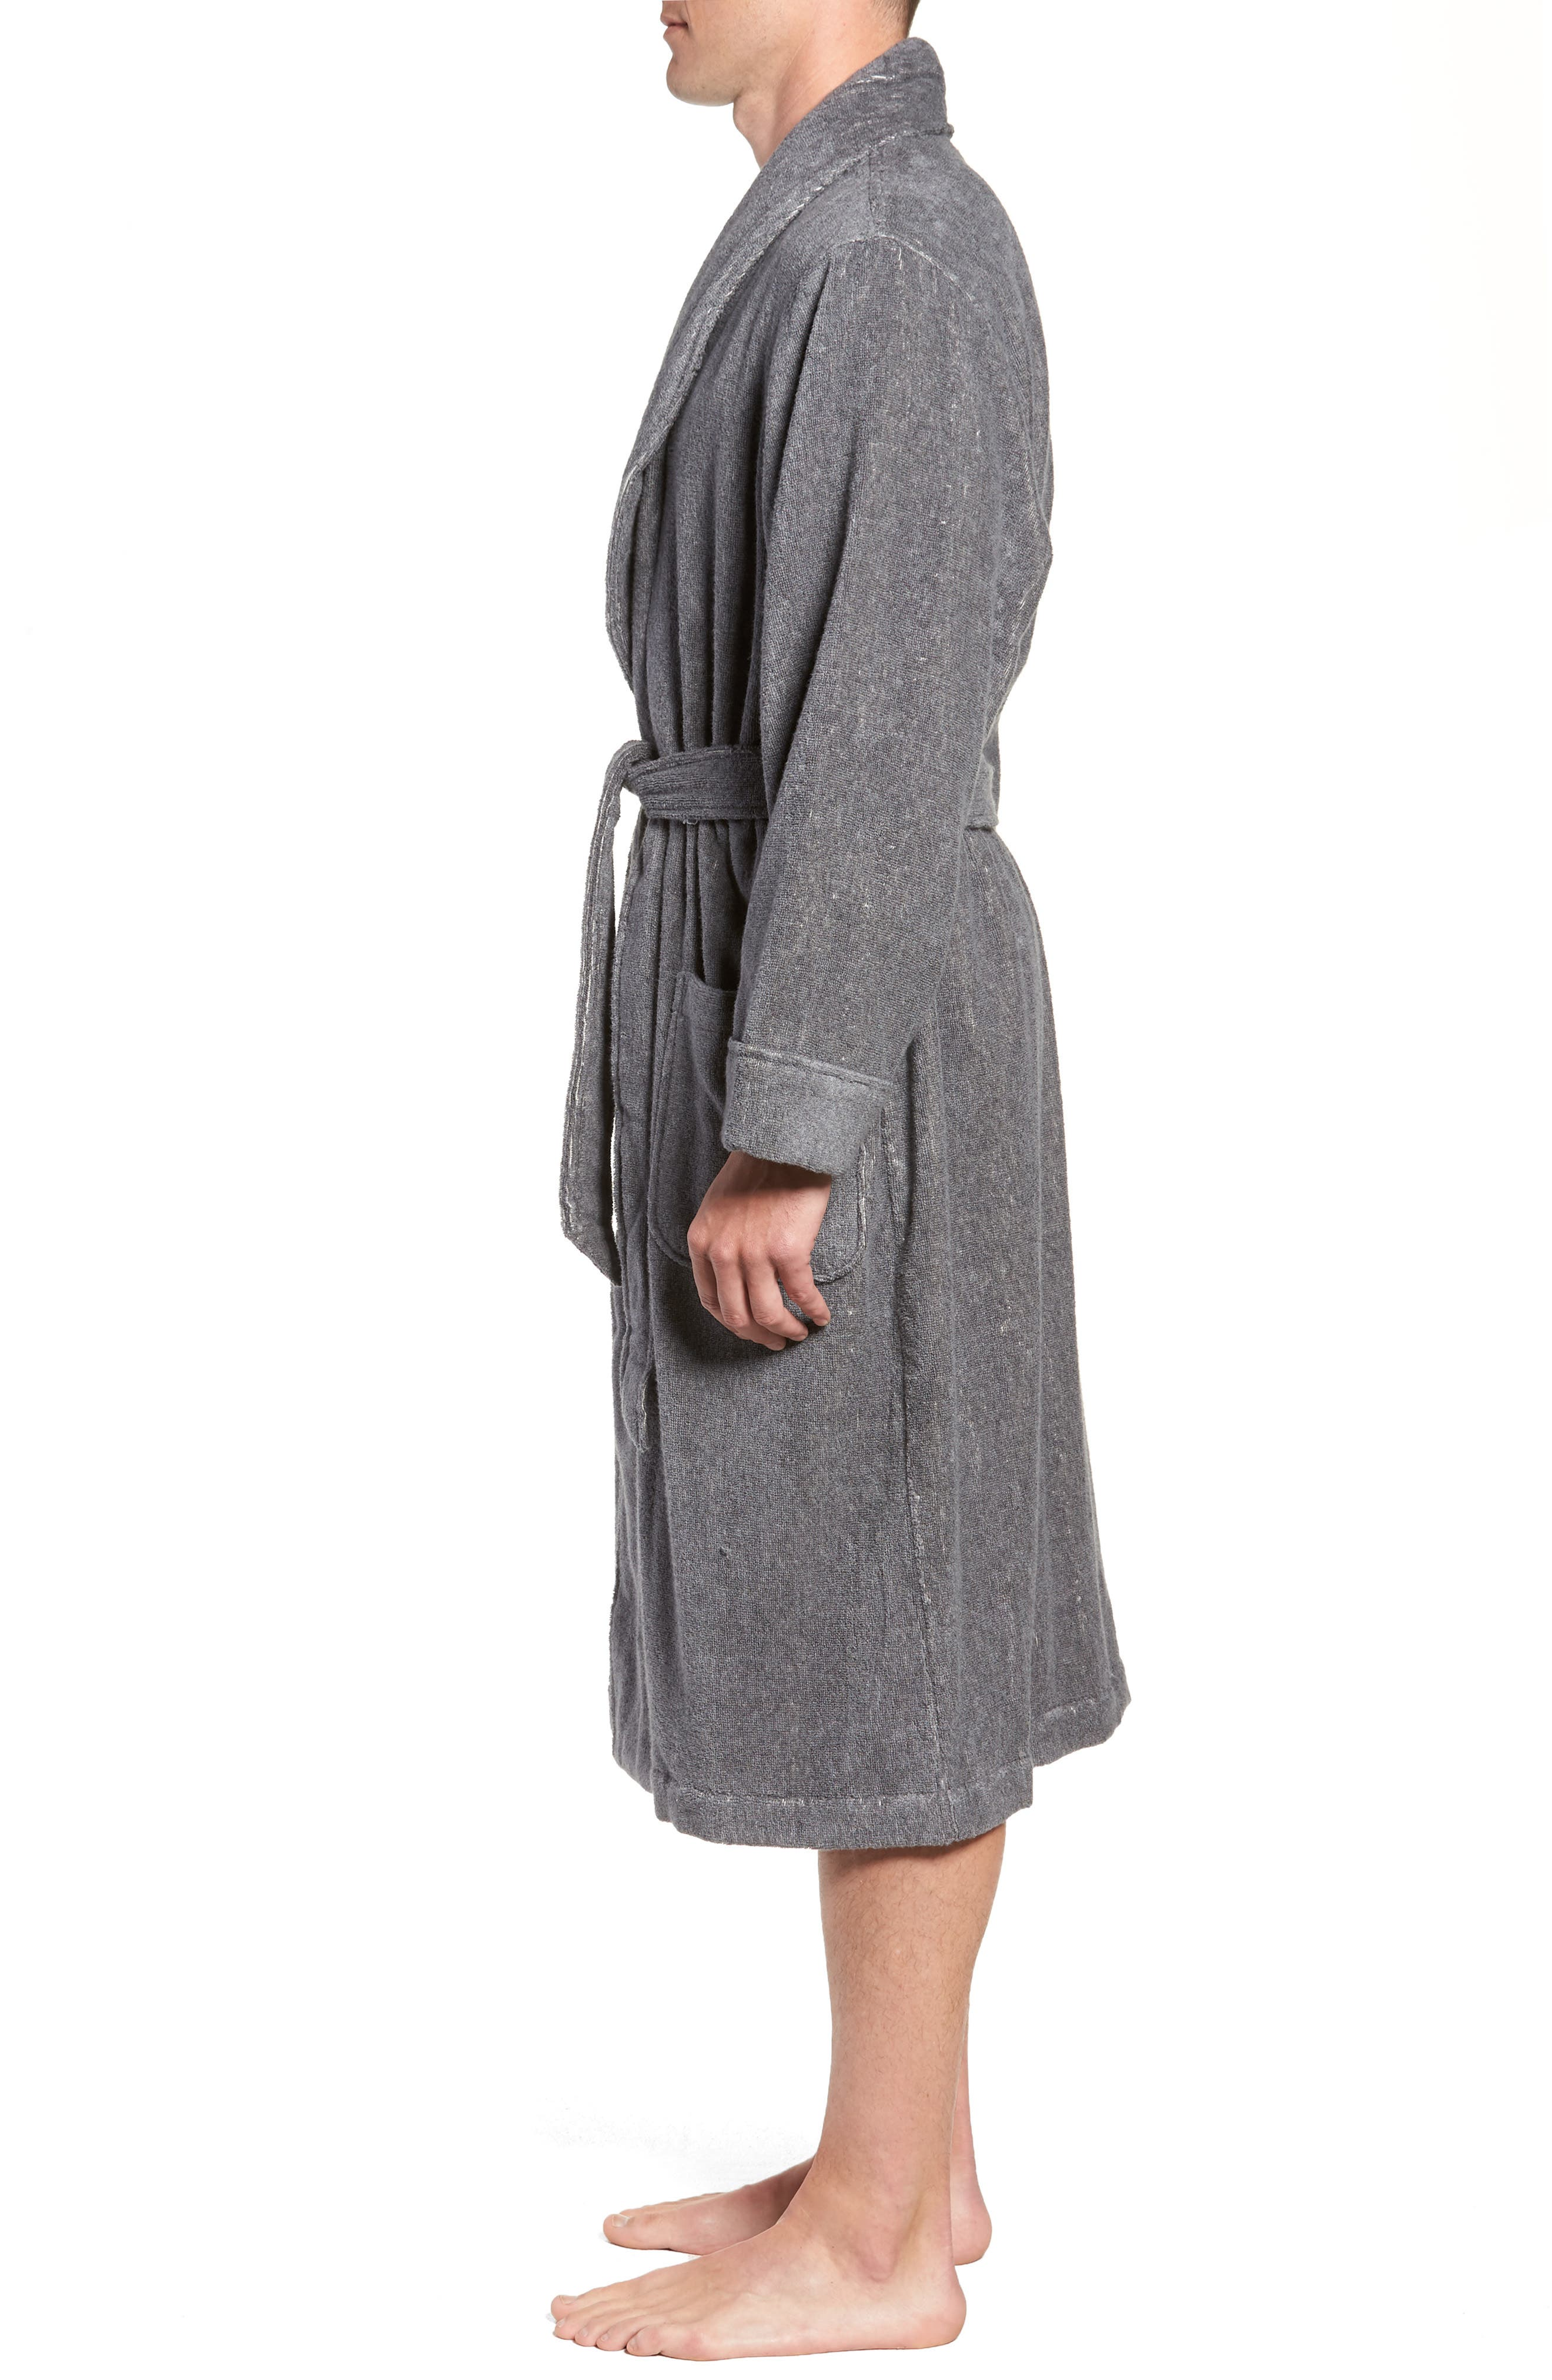 Hydro Cotton Terry Robe,                             Alternate thumbnail 5, color,                             Charcoal Heather